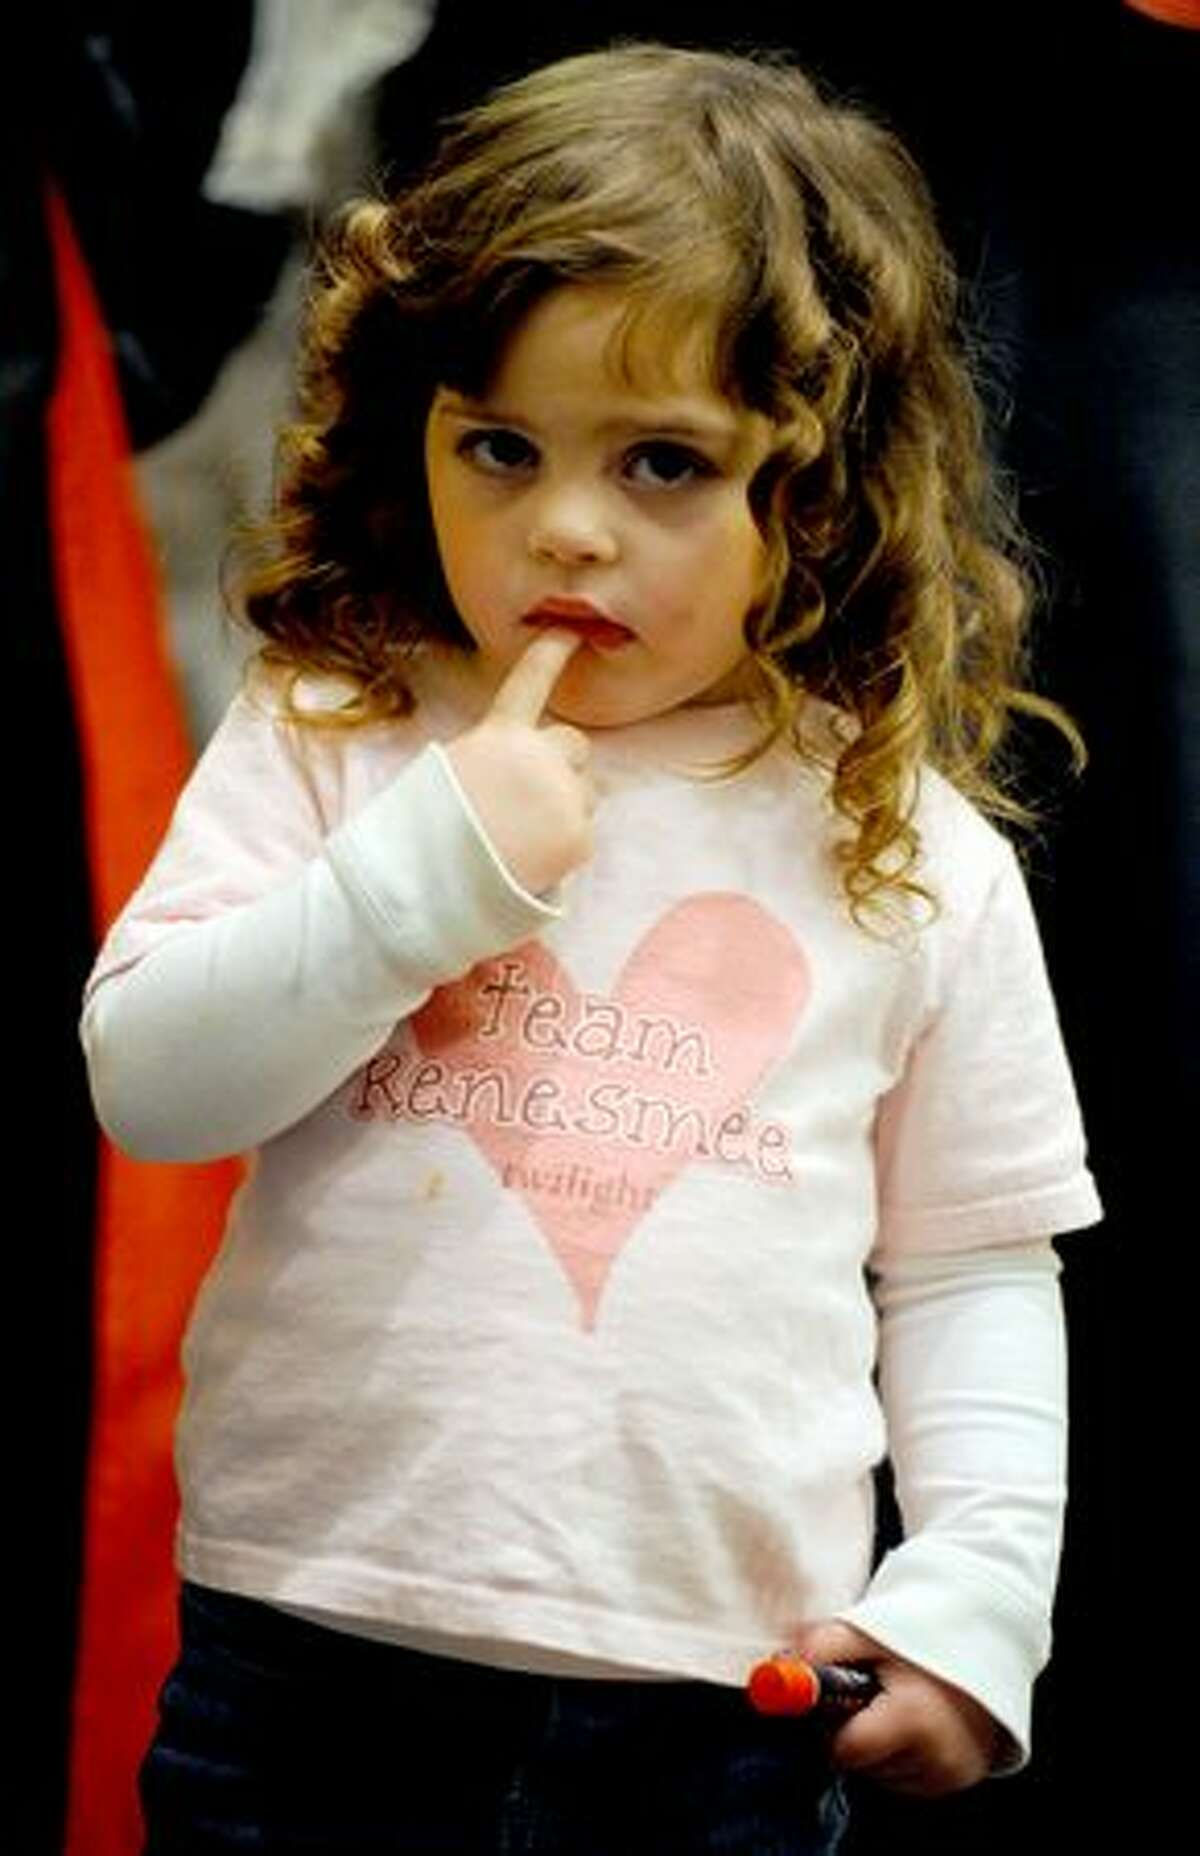 Two-and-a-half-year-old Jadyn Mann waits in line for the costume contest at the Official Twilight Convention at the Westin Hotel in Seattle. She won first place in the junior category.